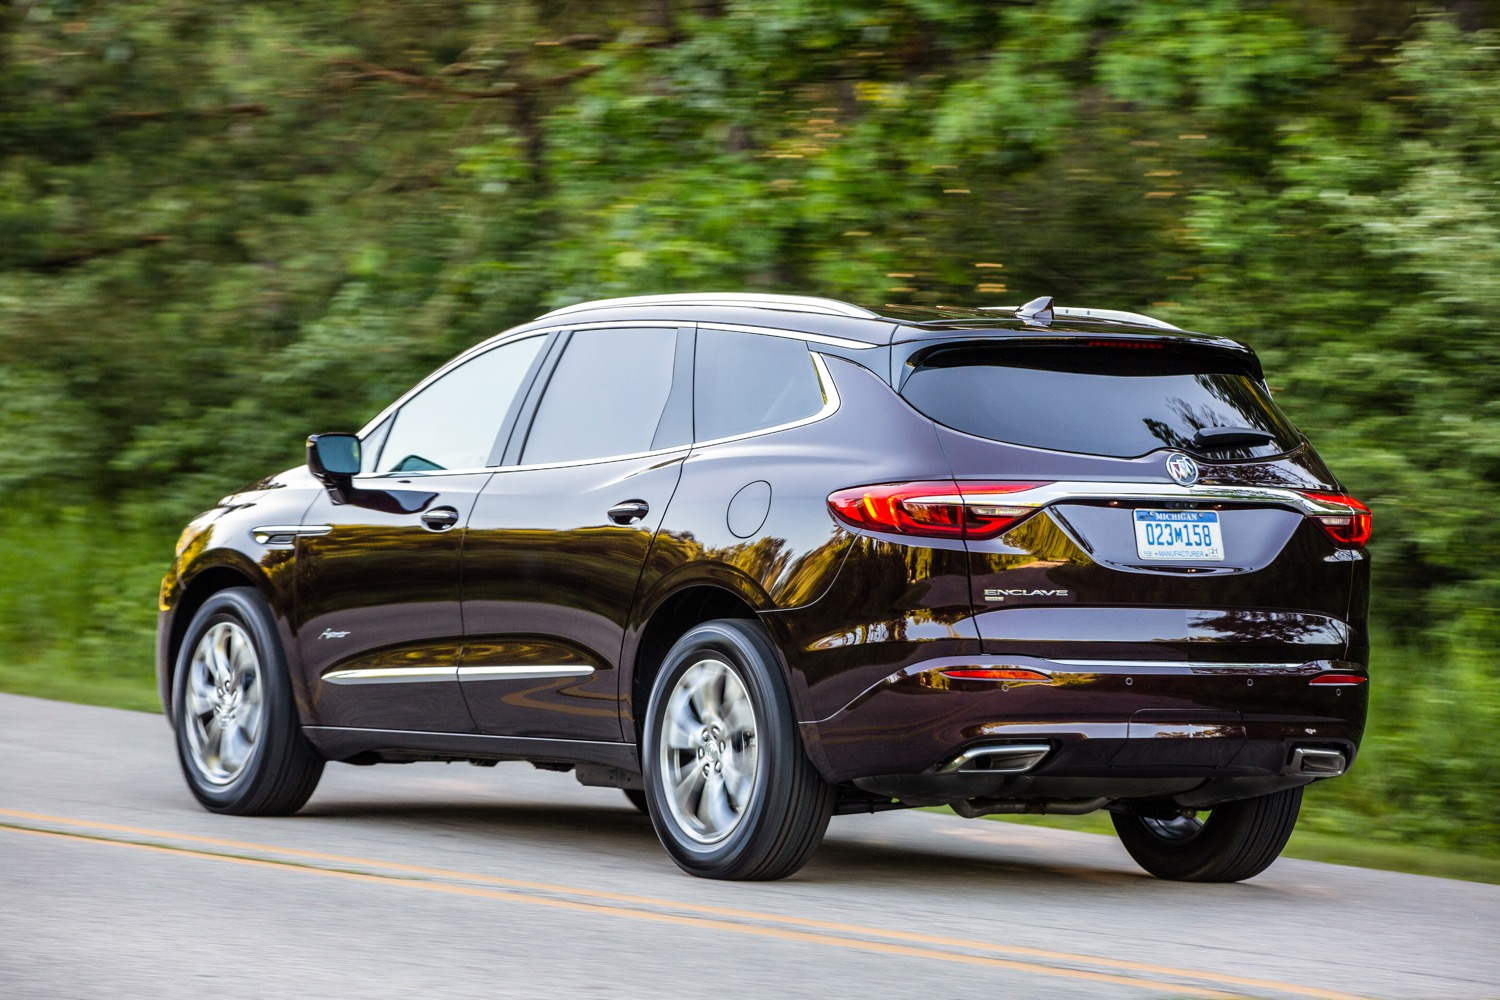 All The Changes Made To The 2020 Buick Enclave | Gm Authority 2022 Buick Enclave Consumer Reviews, Color Options, Engine